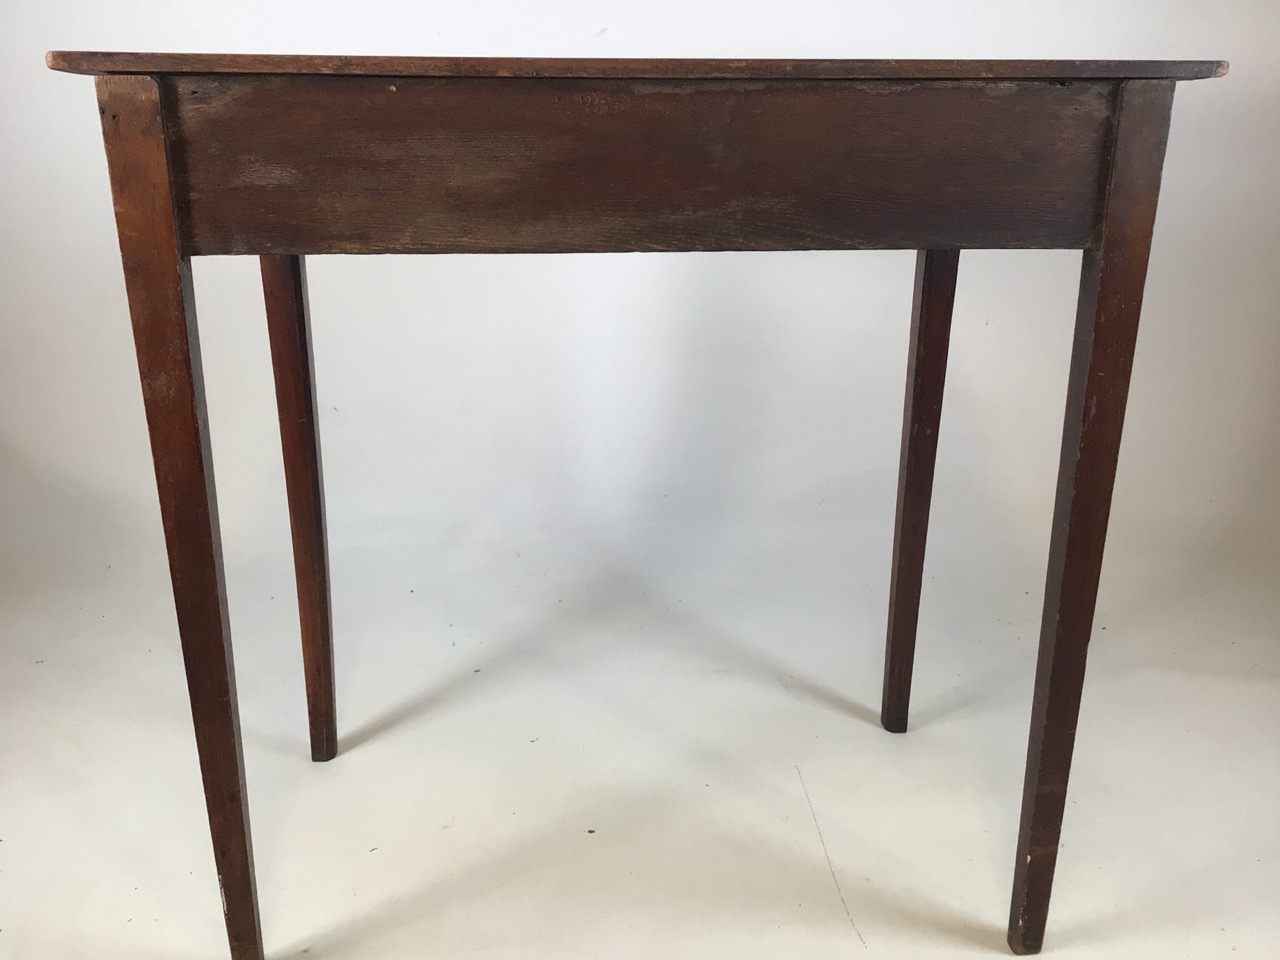 Small antique Georgian style side table with tapered legs with large central drawers and brass - Image 5 of 8